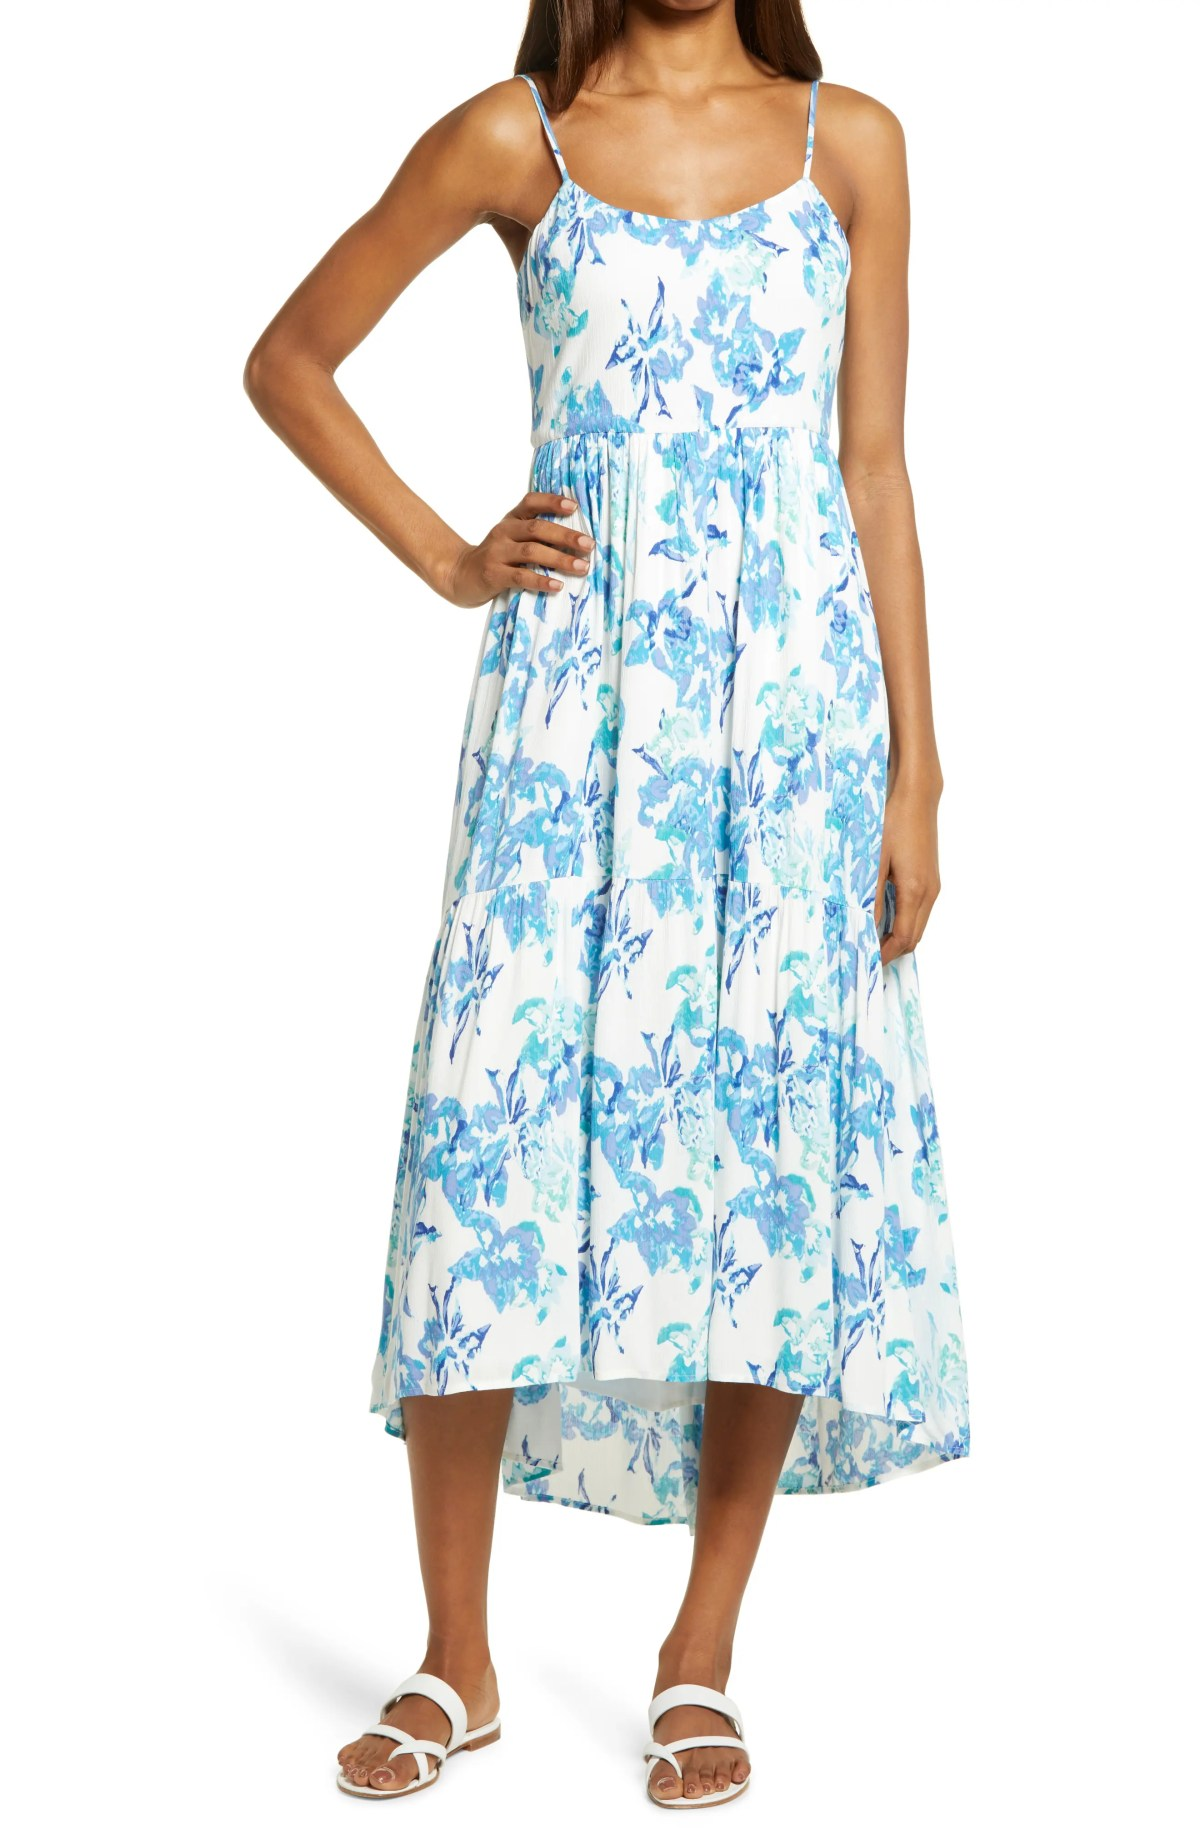 CHARLES HENRY Floral High/Low Tiered Sundress, Main, color, IVORY WATERCOLOR FLORAL